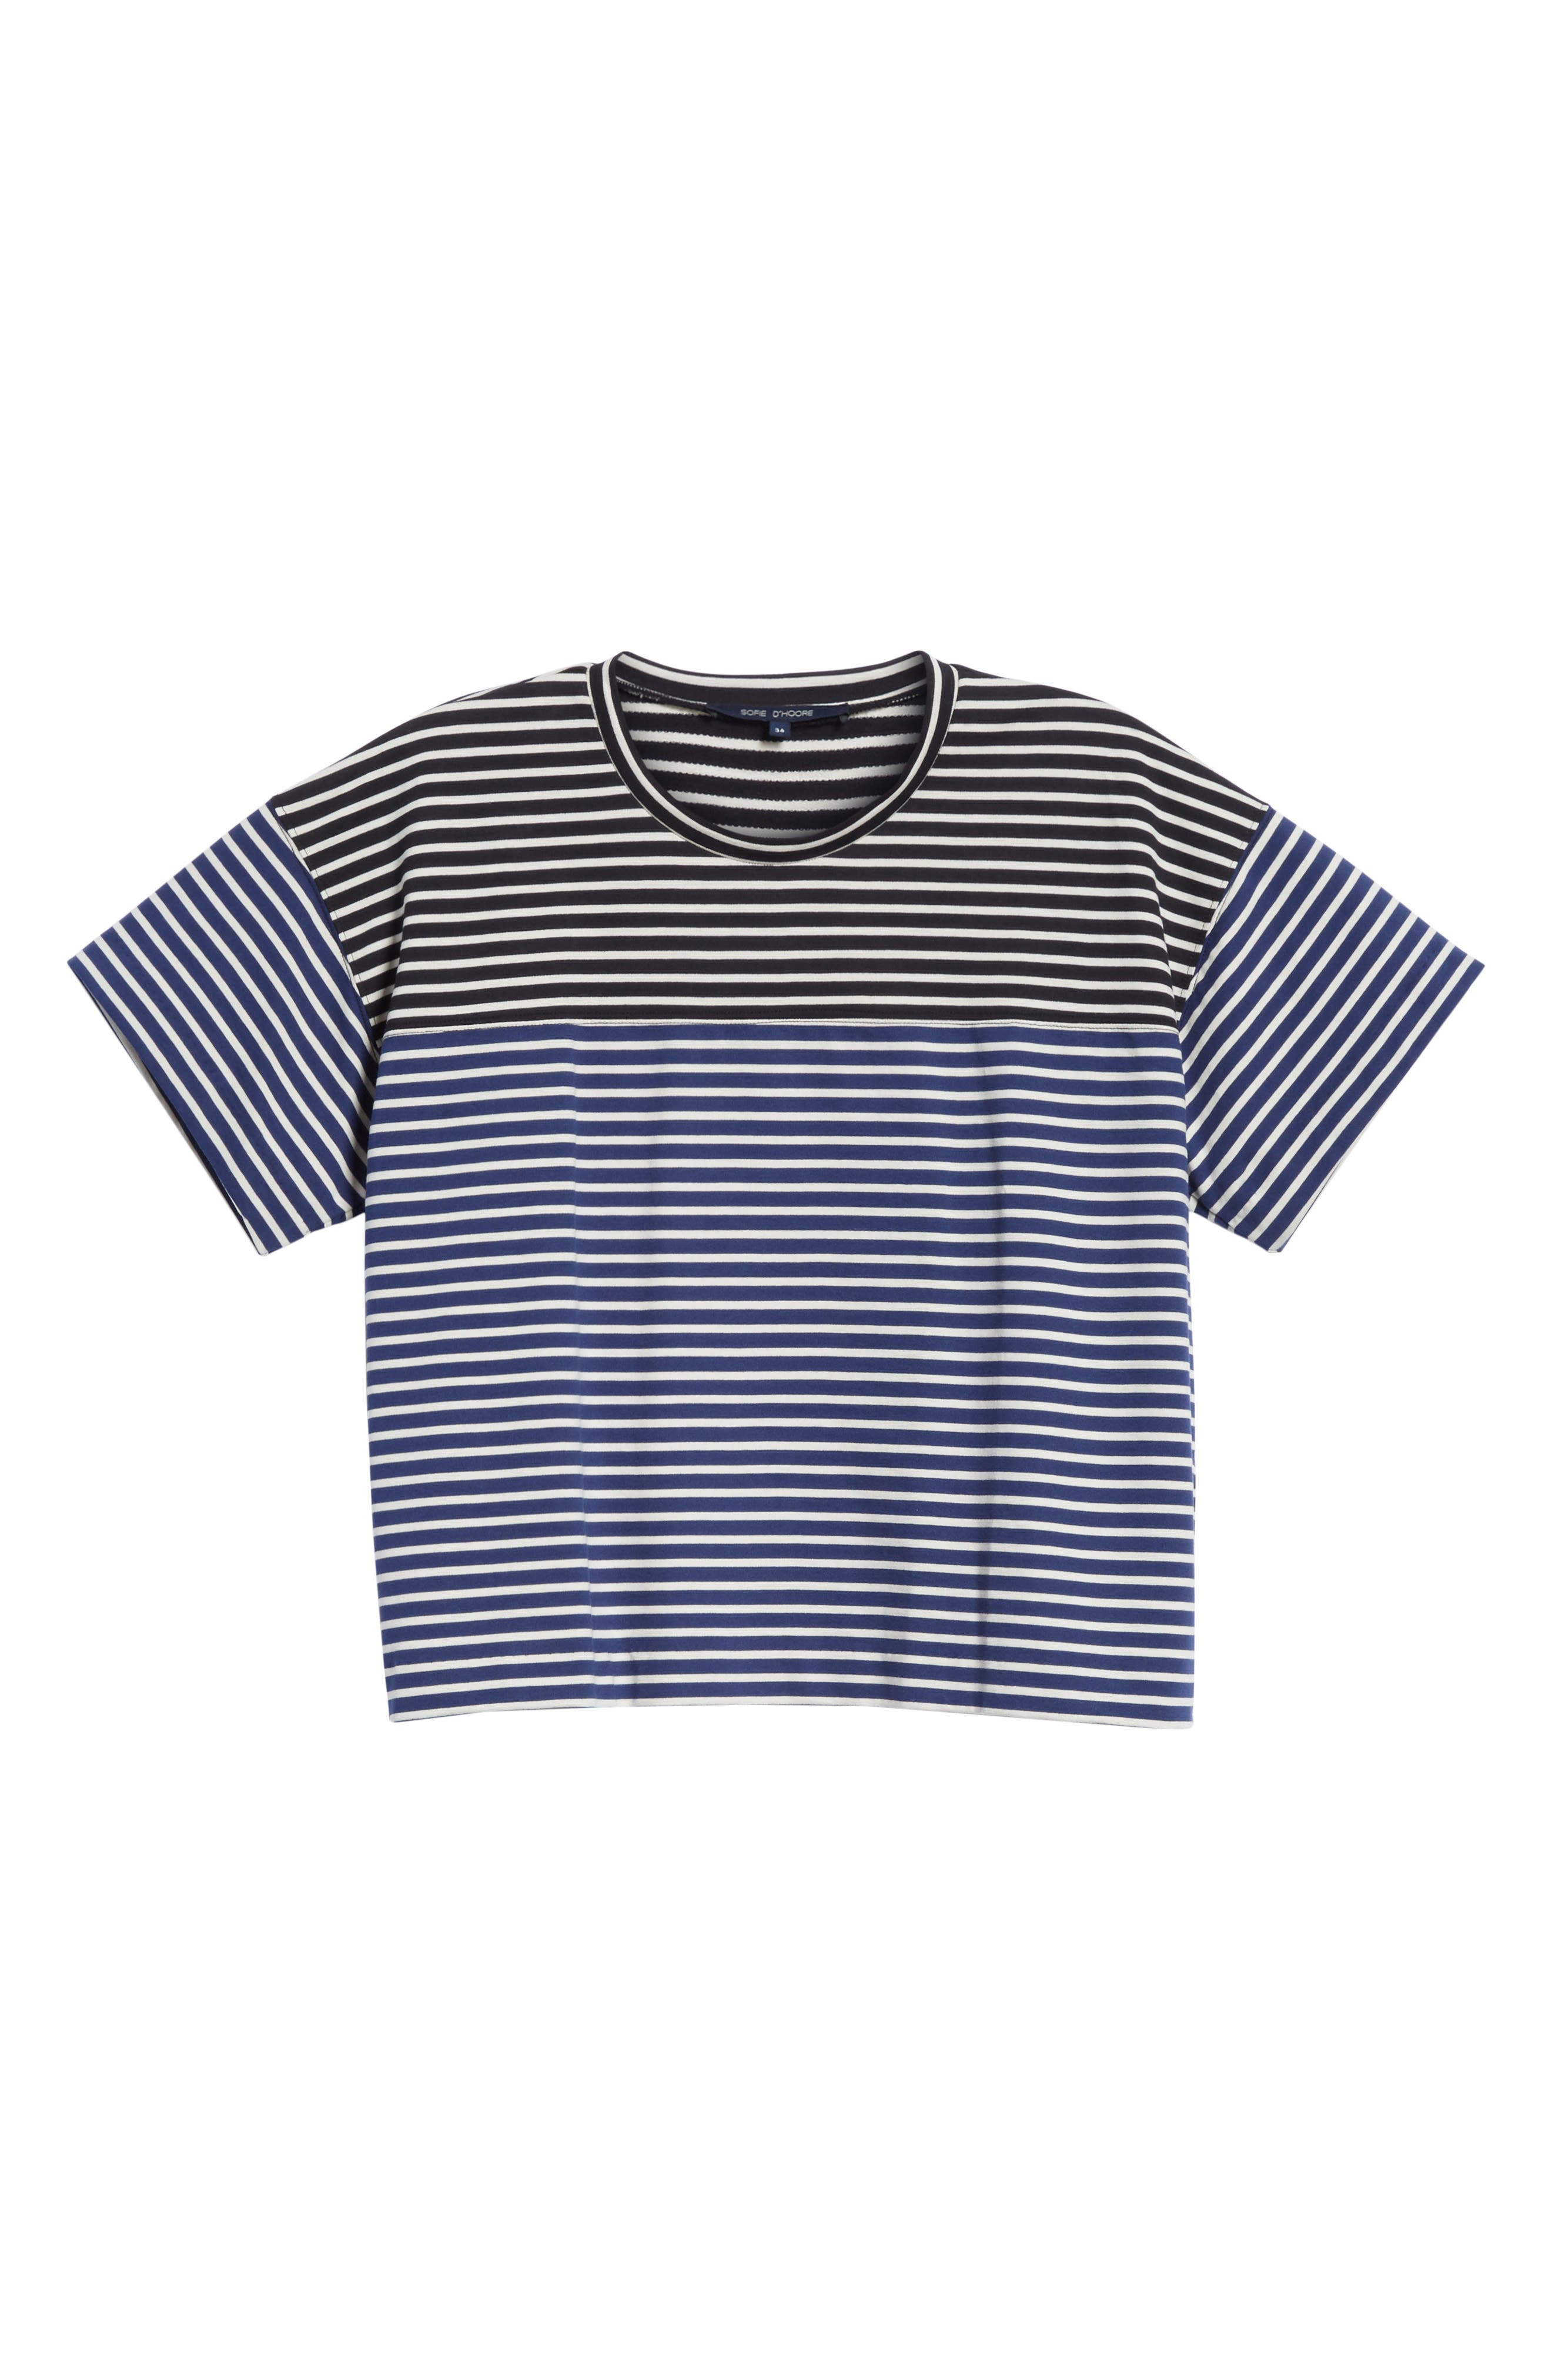 Nautical Stripe Tee,                             Alternate thumbnail 6, color,                             1 Navy/ Blumarine